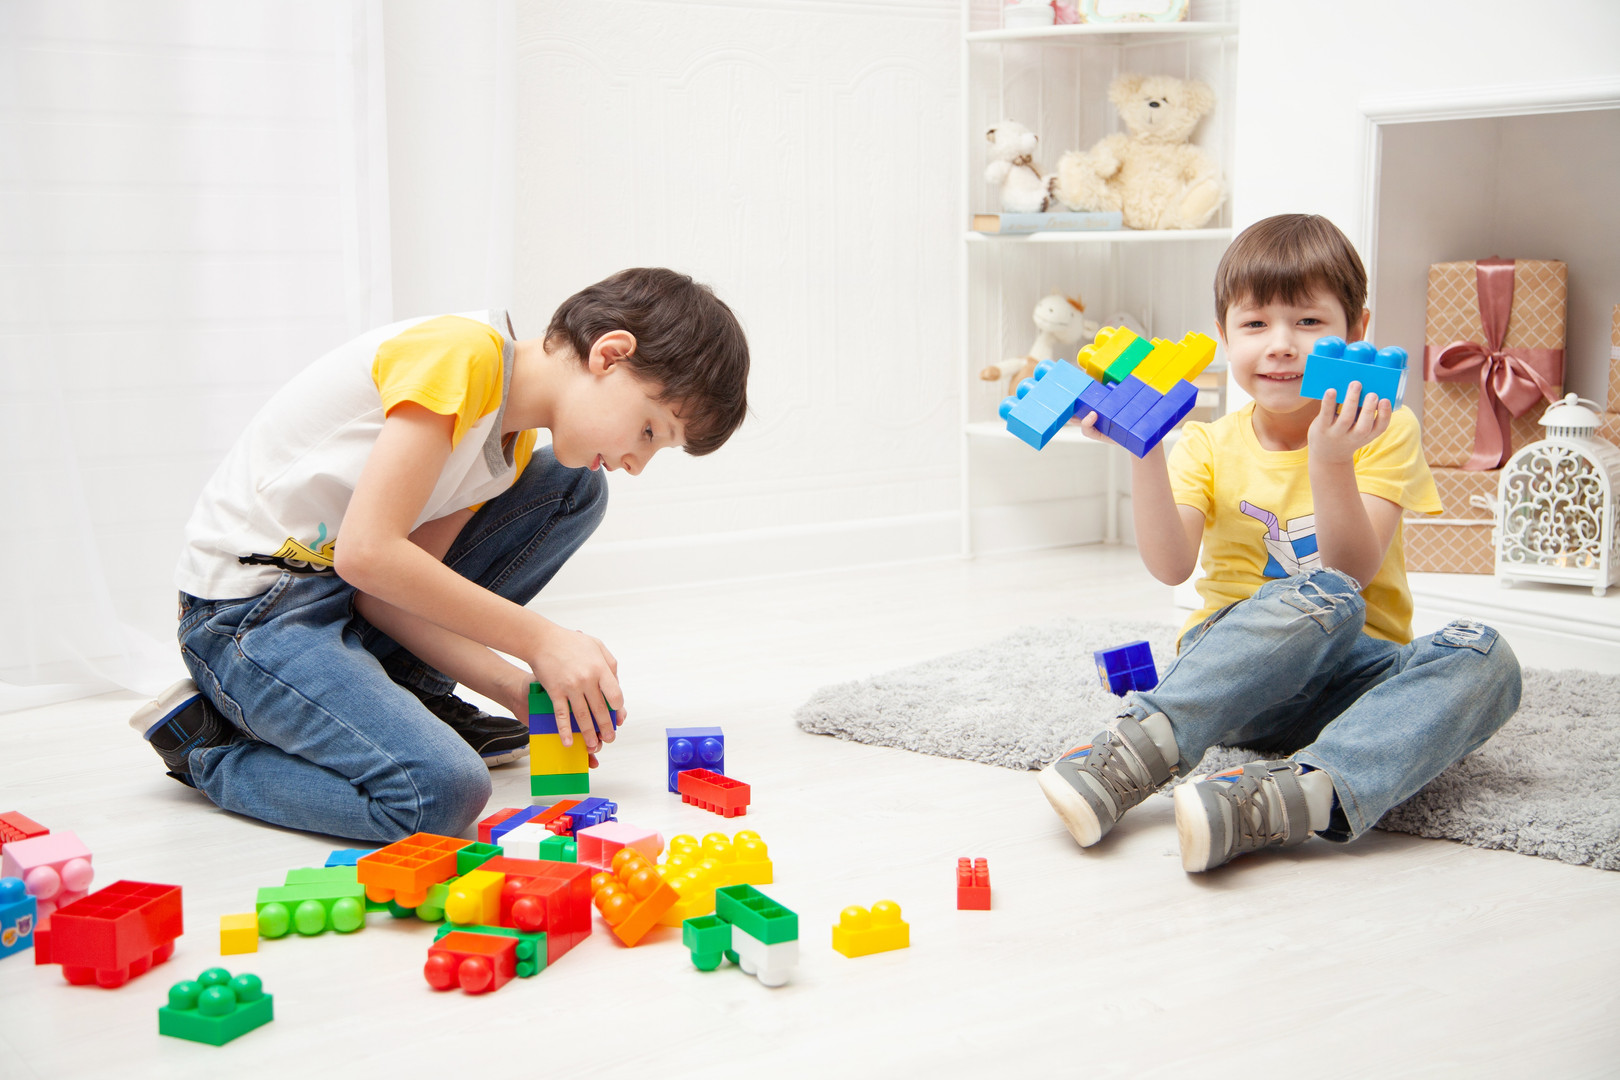 boys-playing-with-building-blocks-392816